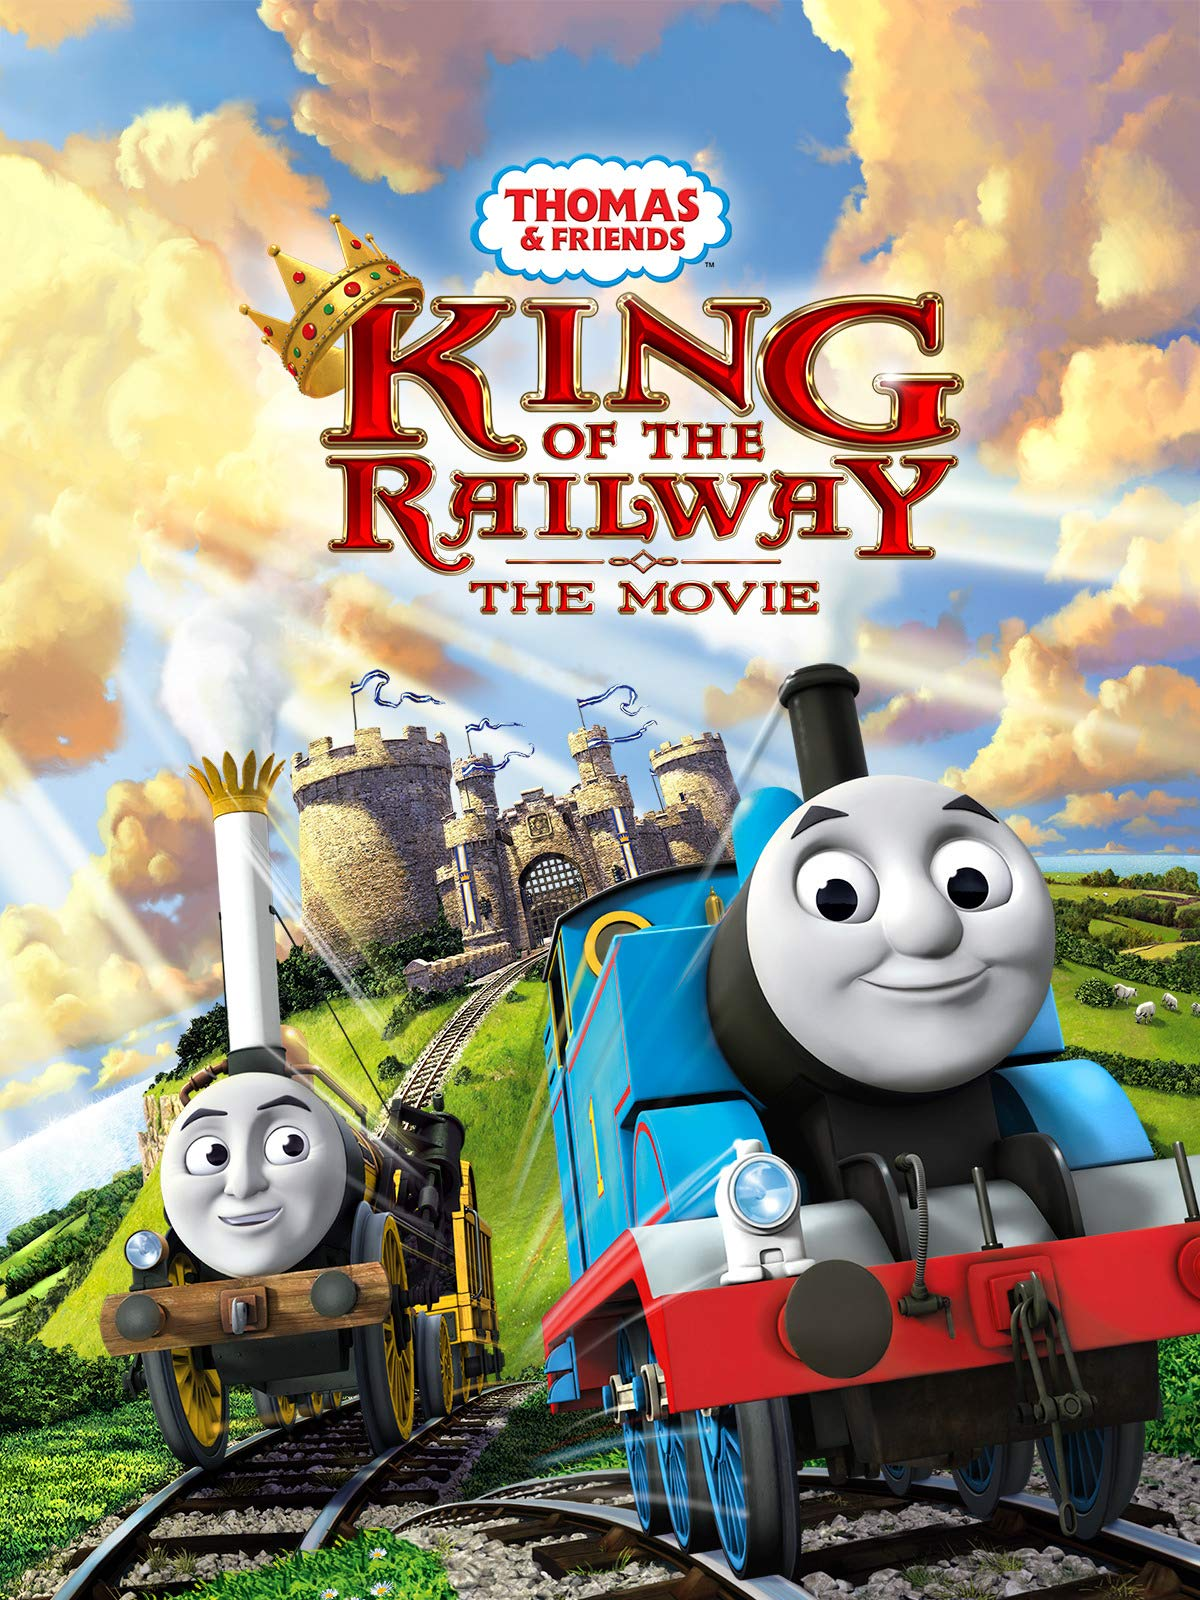 Thomas & Friends: King of the Railway (UK)